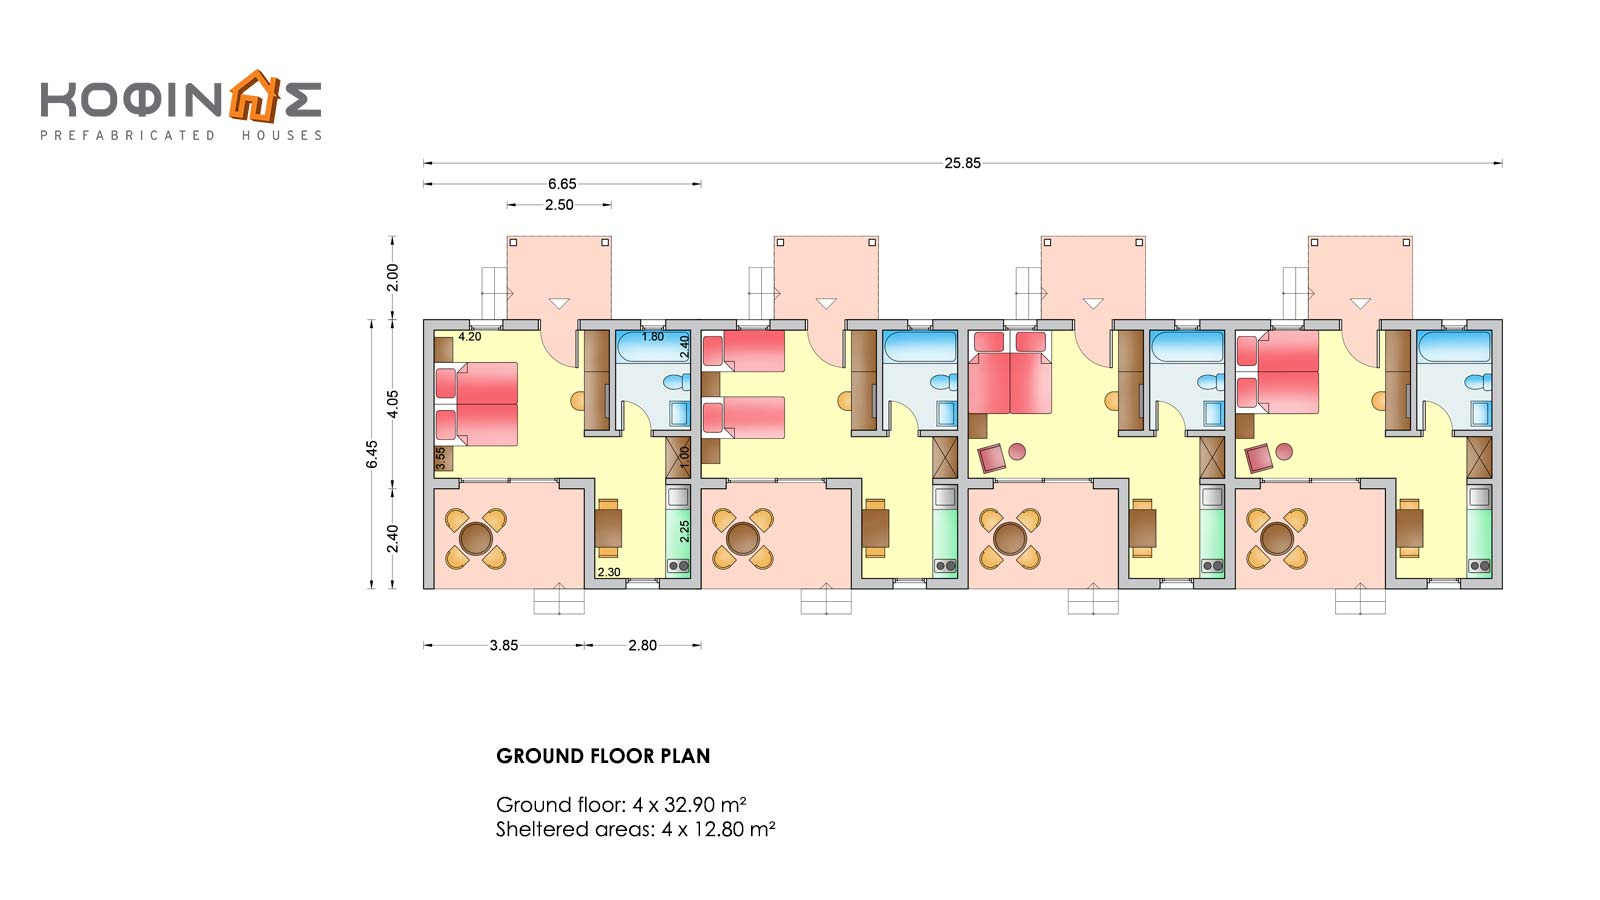 Complex of 1-story houses E-32, total surface of 4 x 32,90 = 131,60 m²